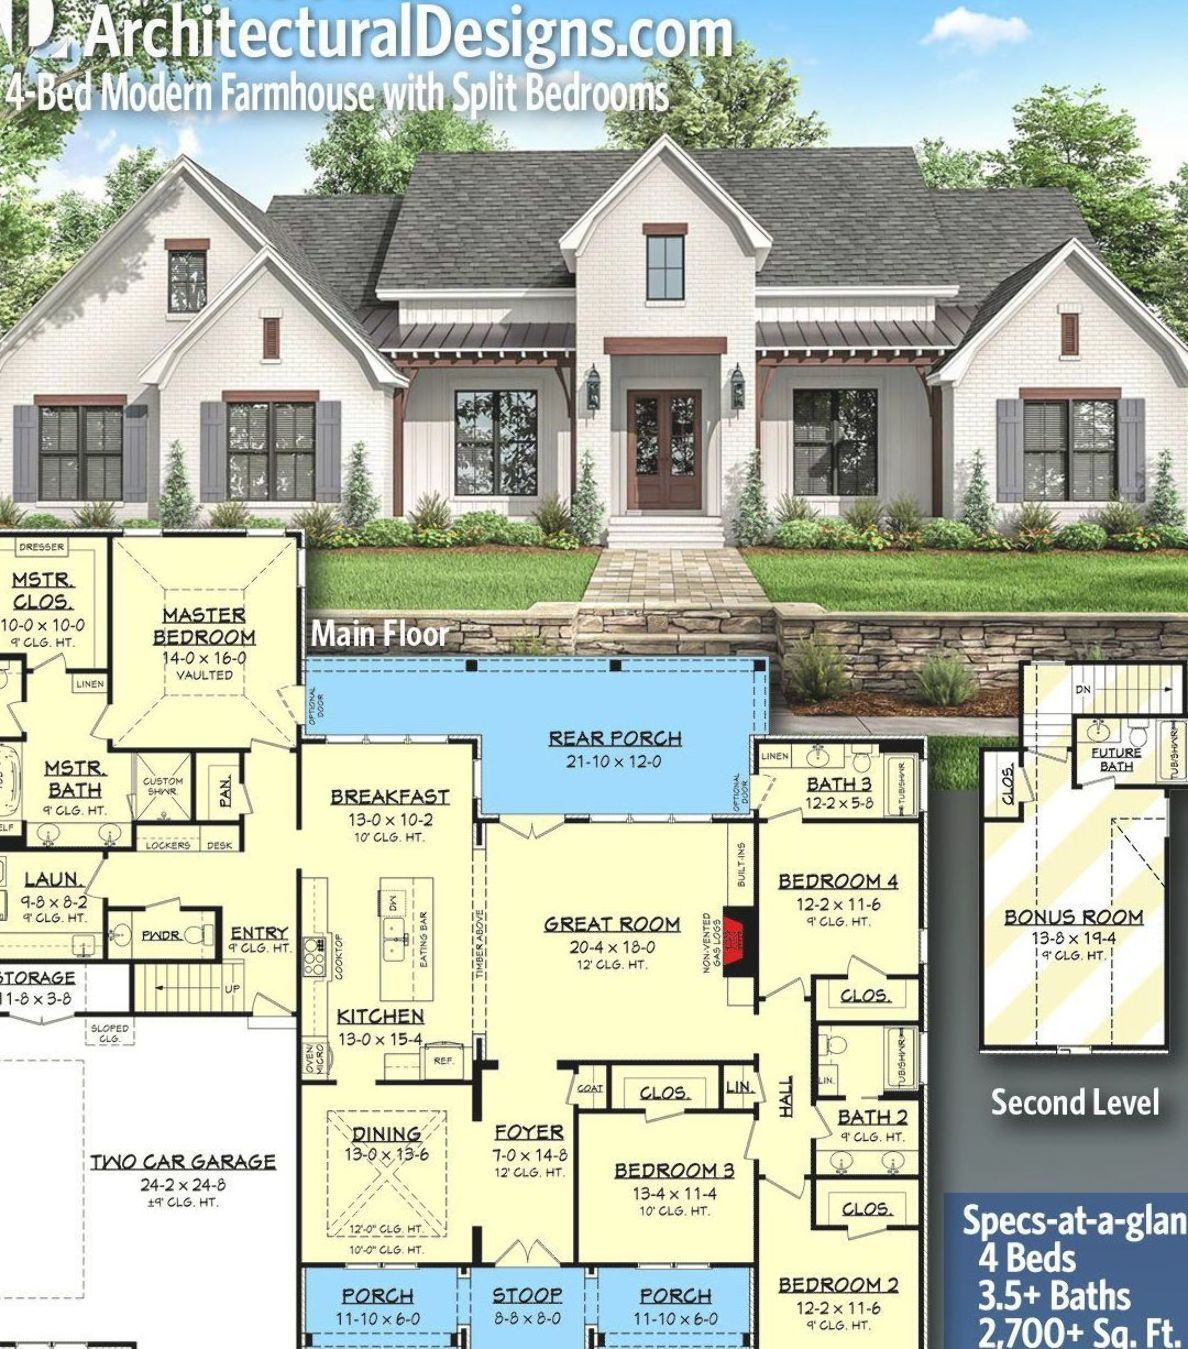 Architectural Designs Southern Farmhouse Home Plan 51809hz With 4 Beds And 3 5 Baths In 2 700 In 2020 Modern Farmhouse Plans House Plans Farmhouse Family House Plans